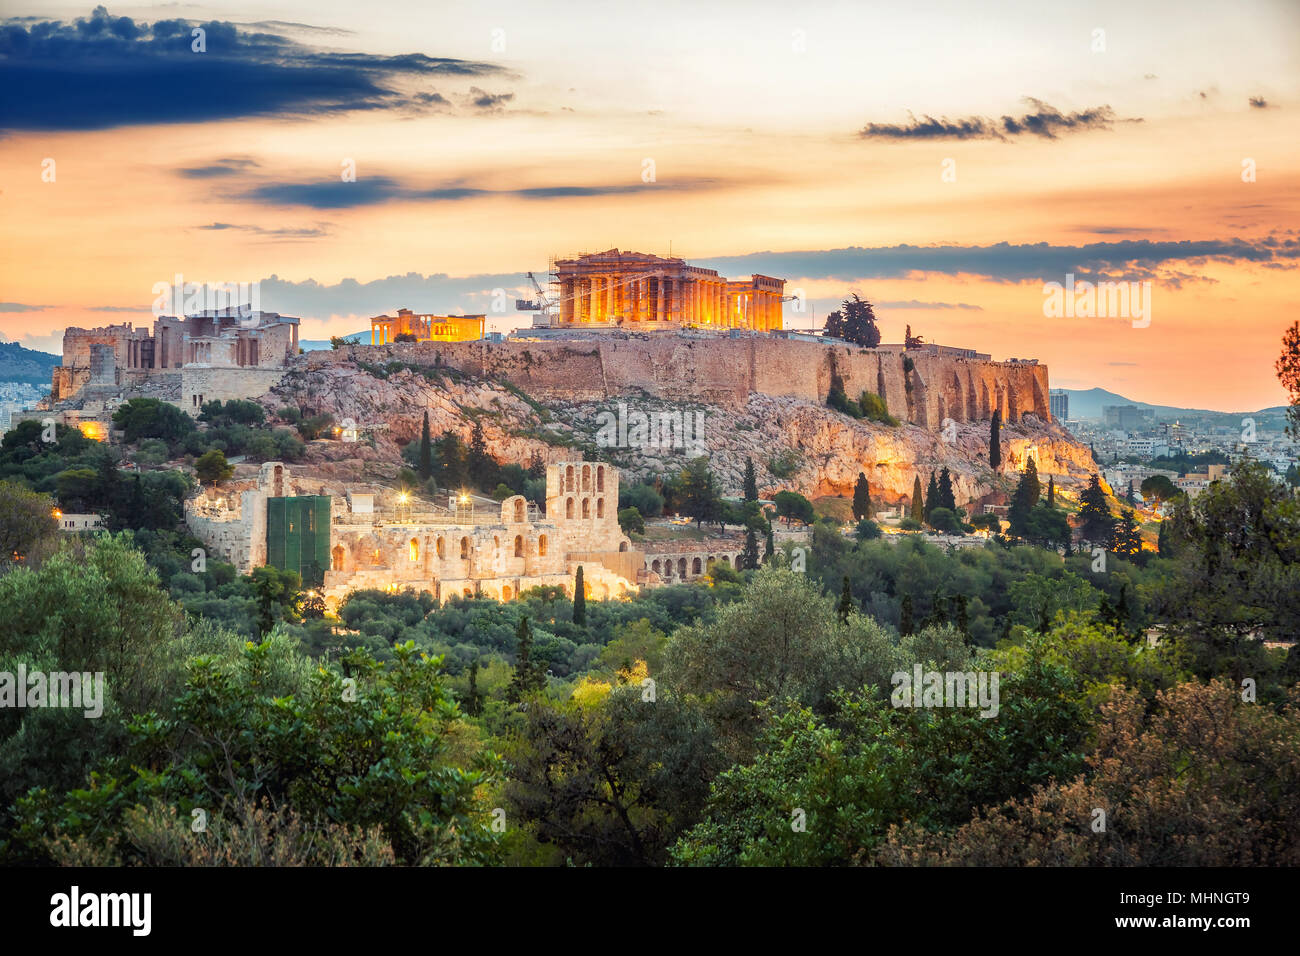 Parthenon, Acropolis of Athens, Greece at sunrise - Stock Image